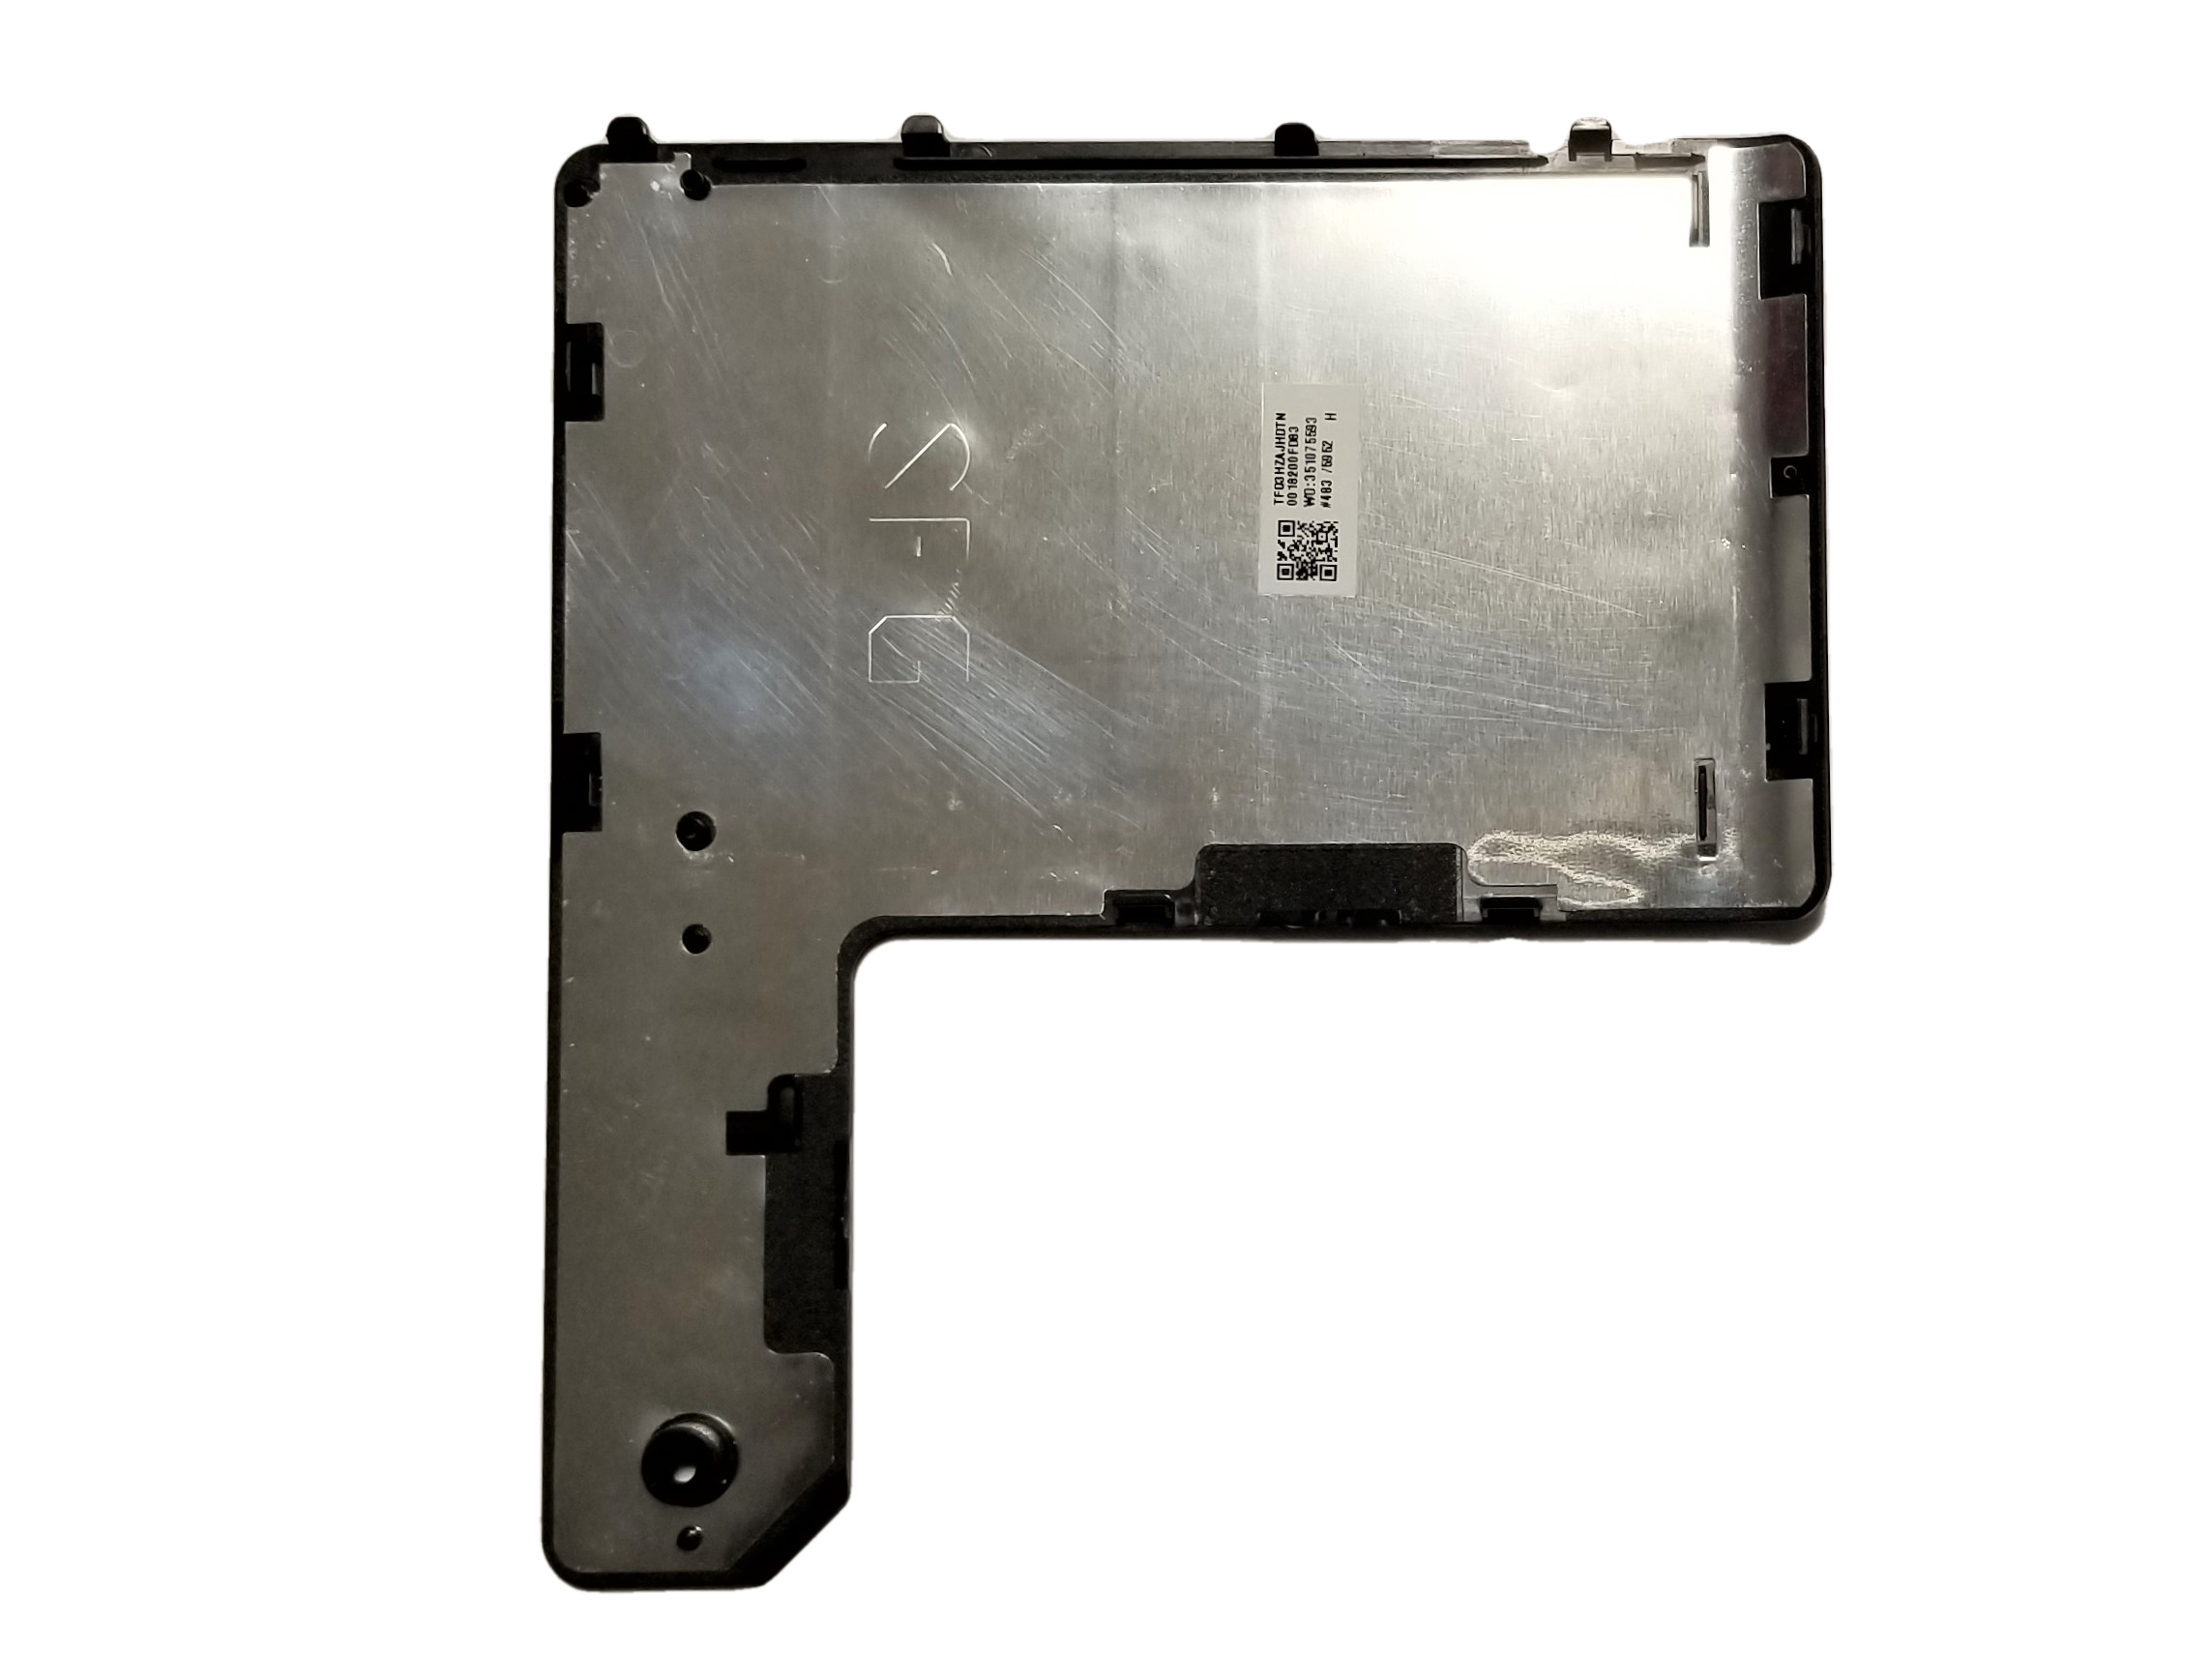 Acer Aspire 3 A315-21 Hard Drive Door Cover - 42.GNPN7.0017.001